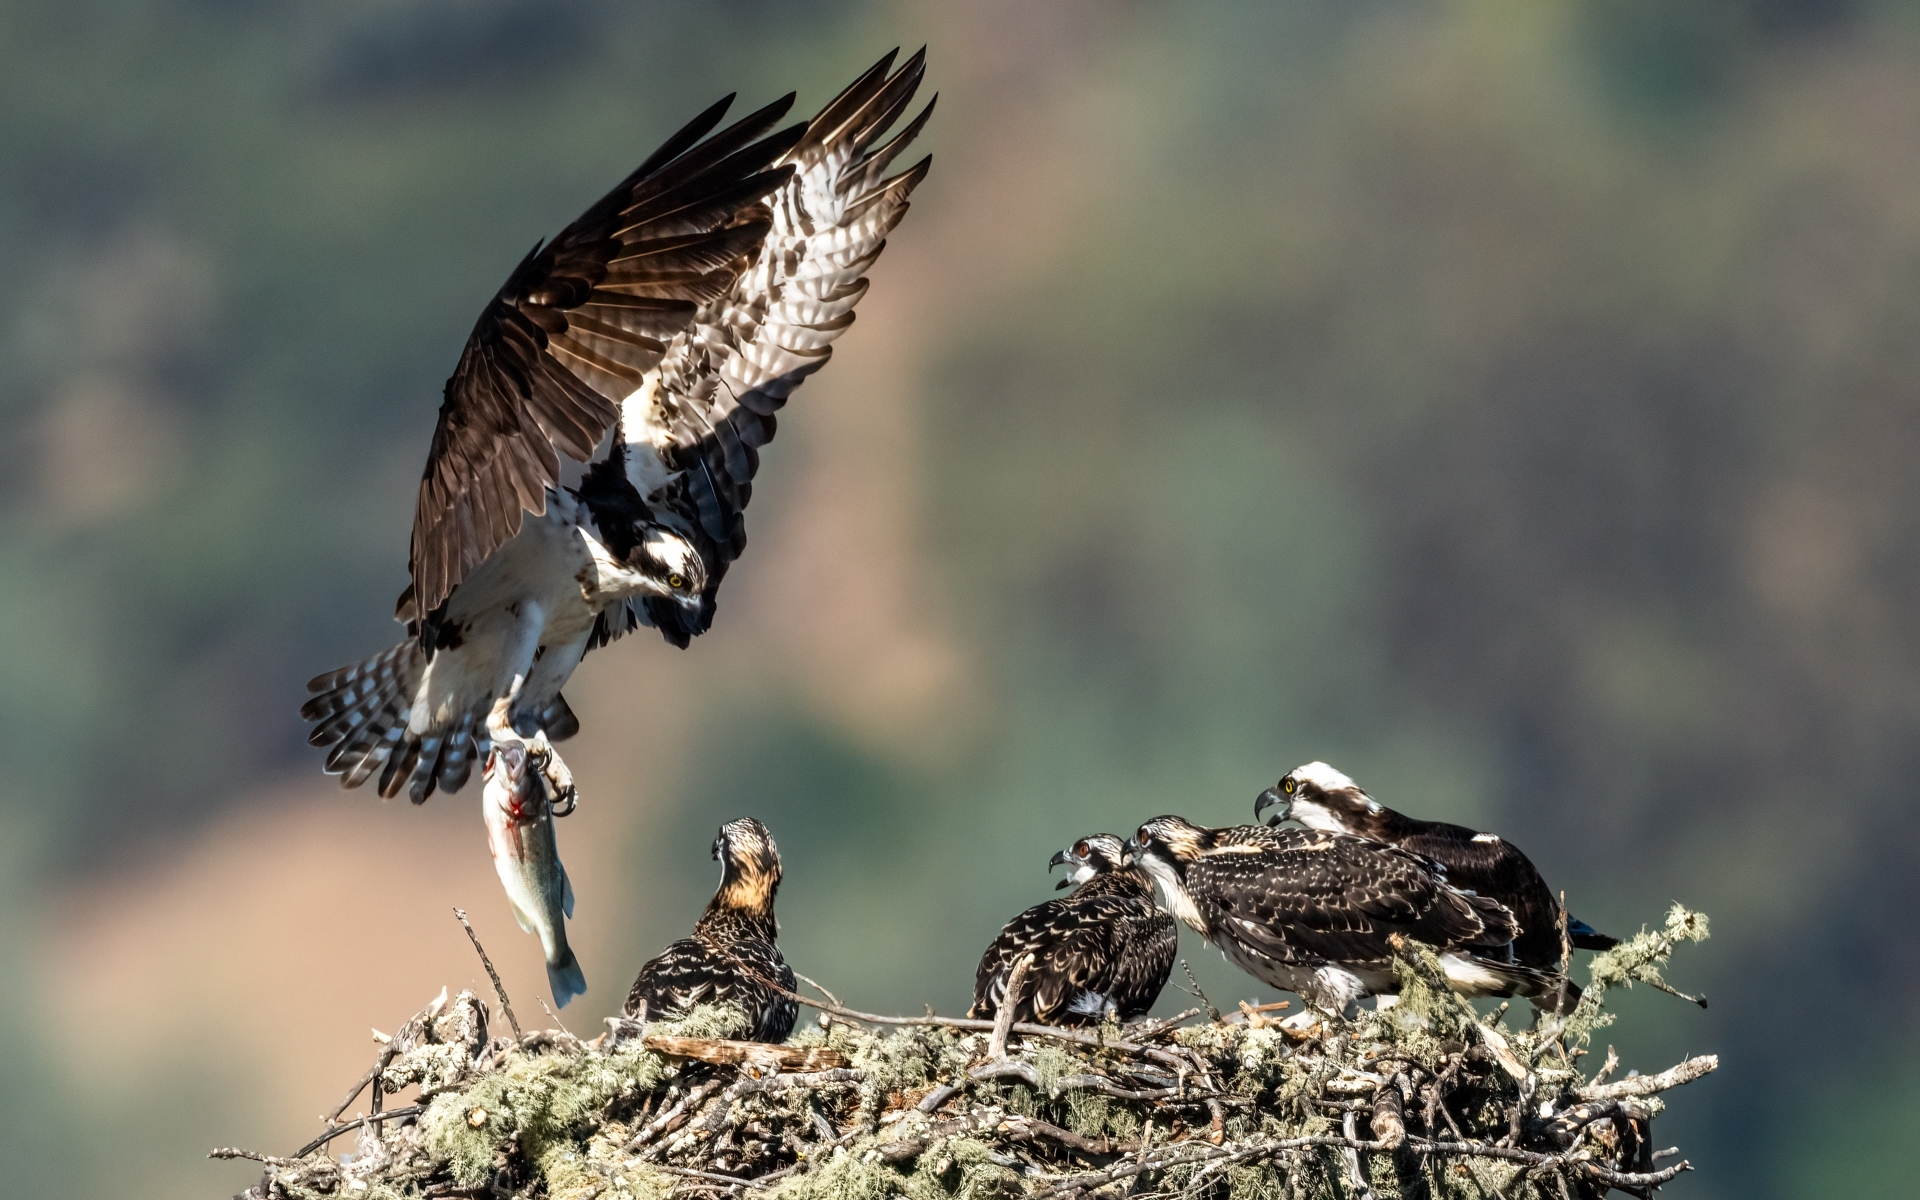 Osprey-Family-3-The-adult-female-on-the-right-has-returned-to-the-nest-and-the-adult-male-flies-in-with-a-fish-in-its-talons-NM-Place-by-Jerry-Meshulam-SR